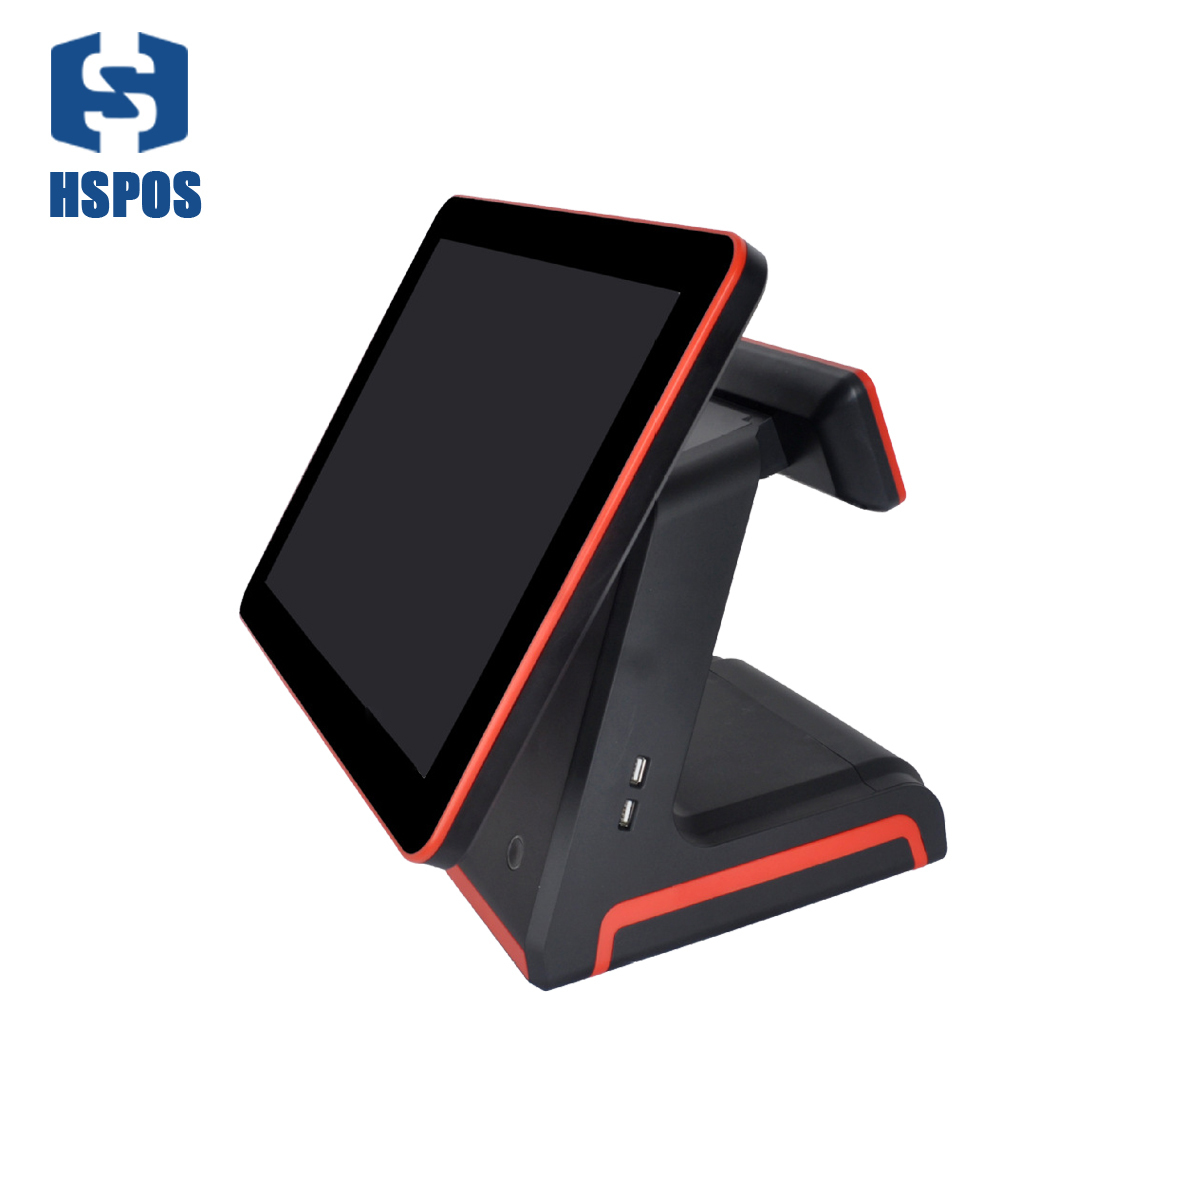 HSPOS 15.6 inch New import LCD Display touch screen monitor Can support single screen and Dual screen for restaurant coffee shop